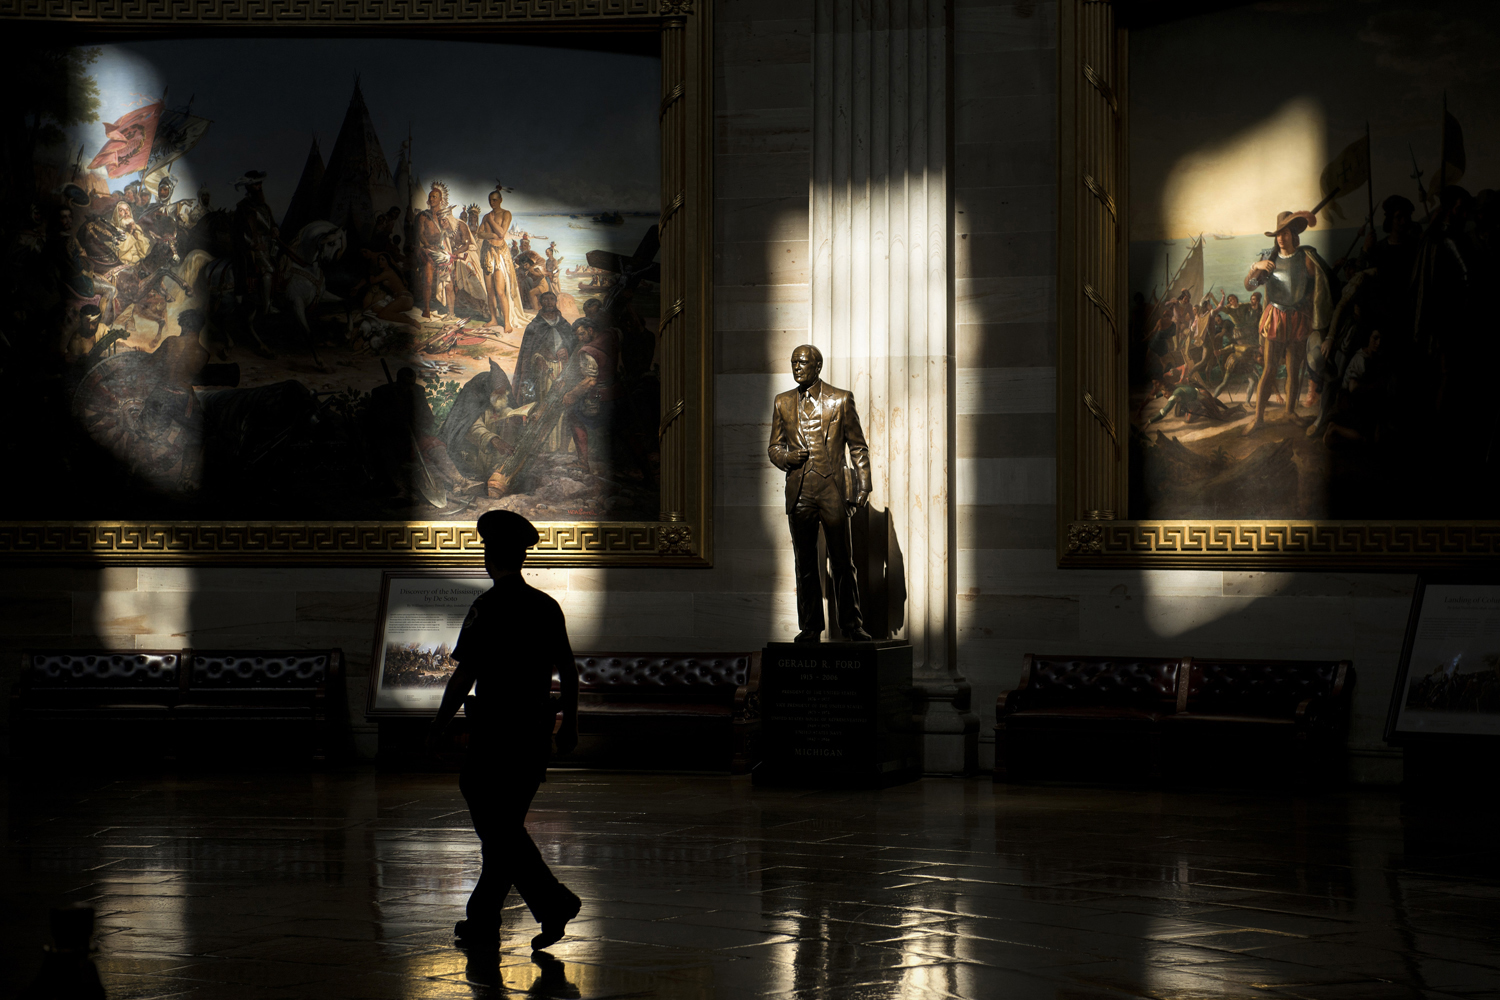 Oct. 1, 2013. A U.S. Capitol Police Officer walks past a statue of Gerald Ford, who was US president during the 1976 shutdown of the federal government, in the Rotunda while the building was closed to tours on Capitol Hill in Washington.